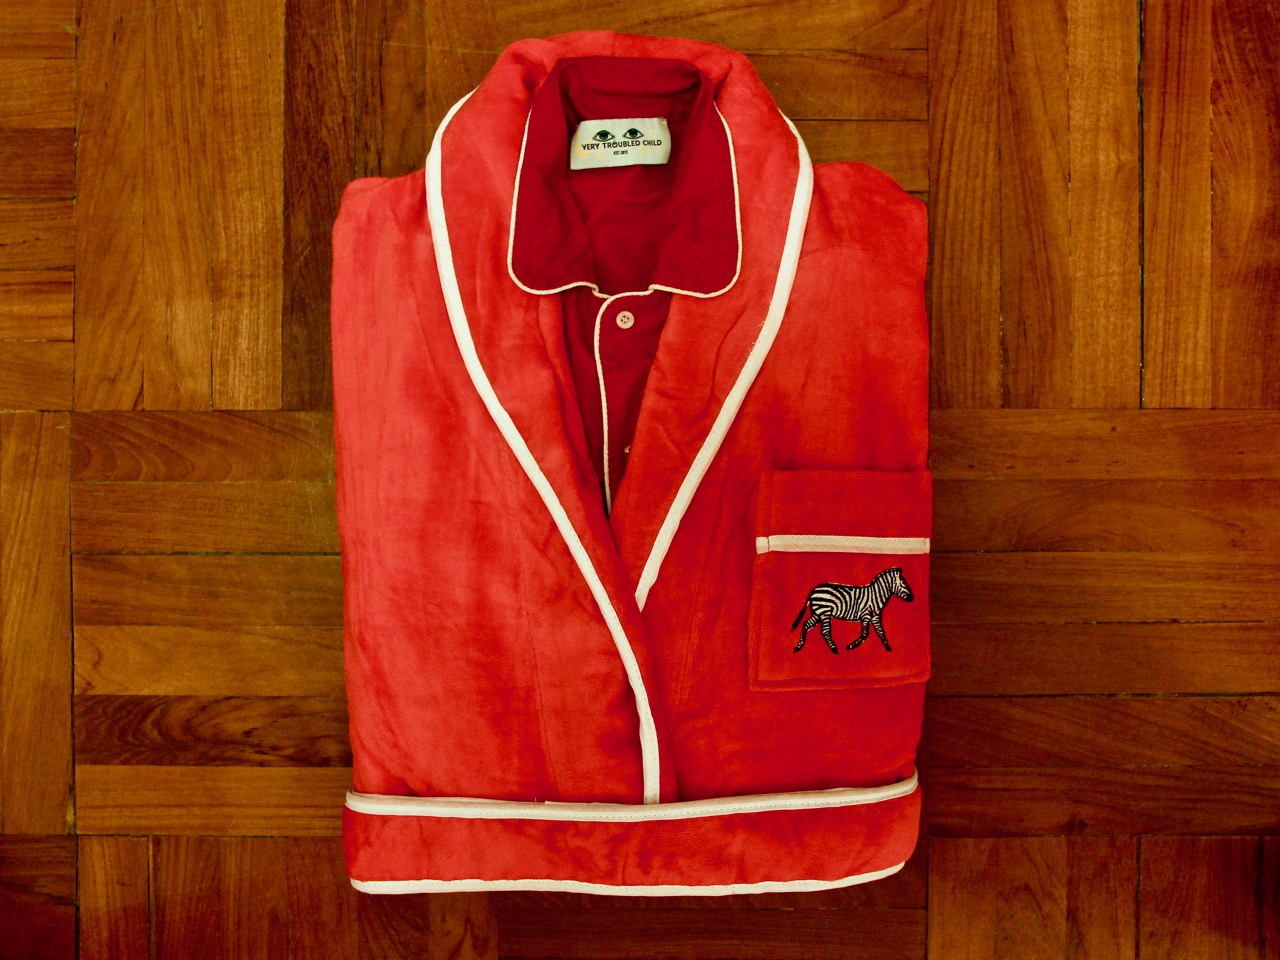 Masai Travel Robe